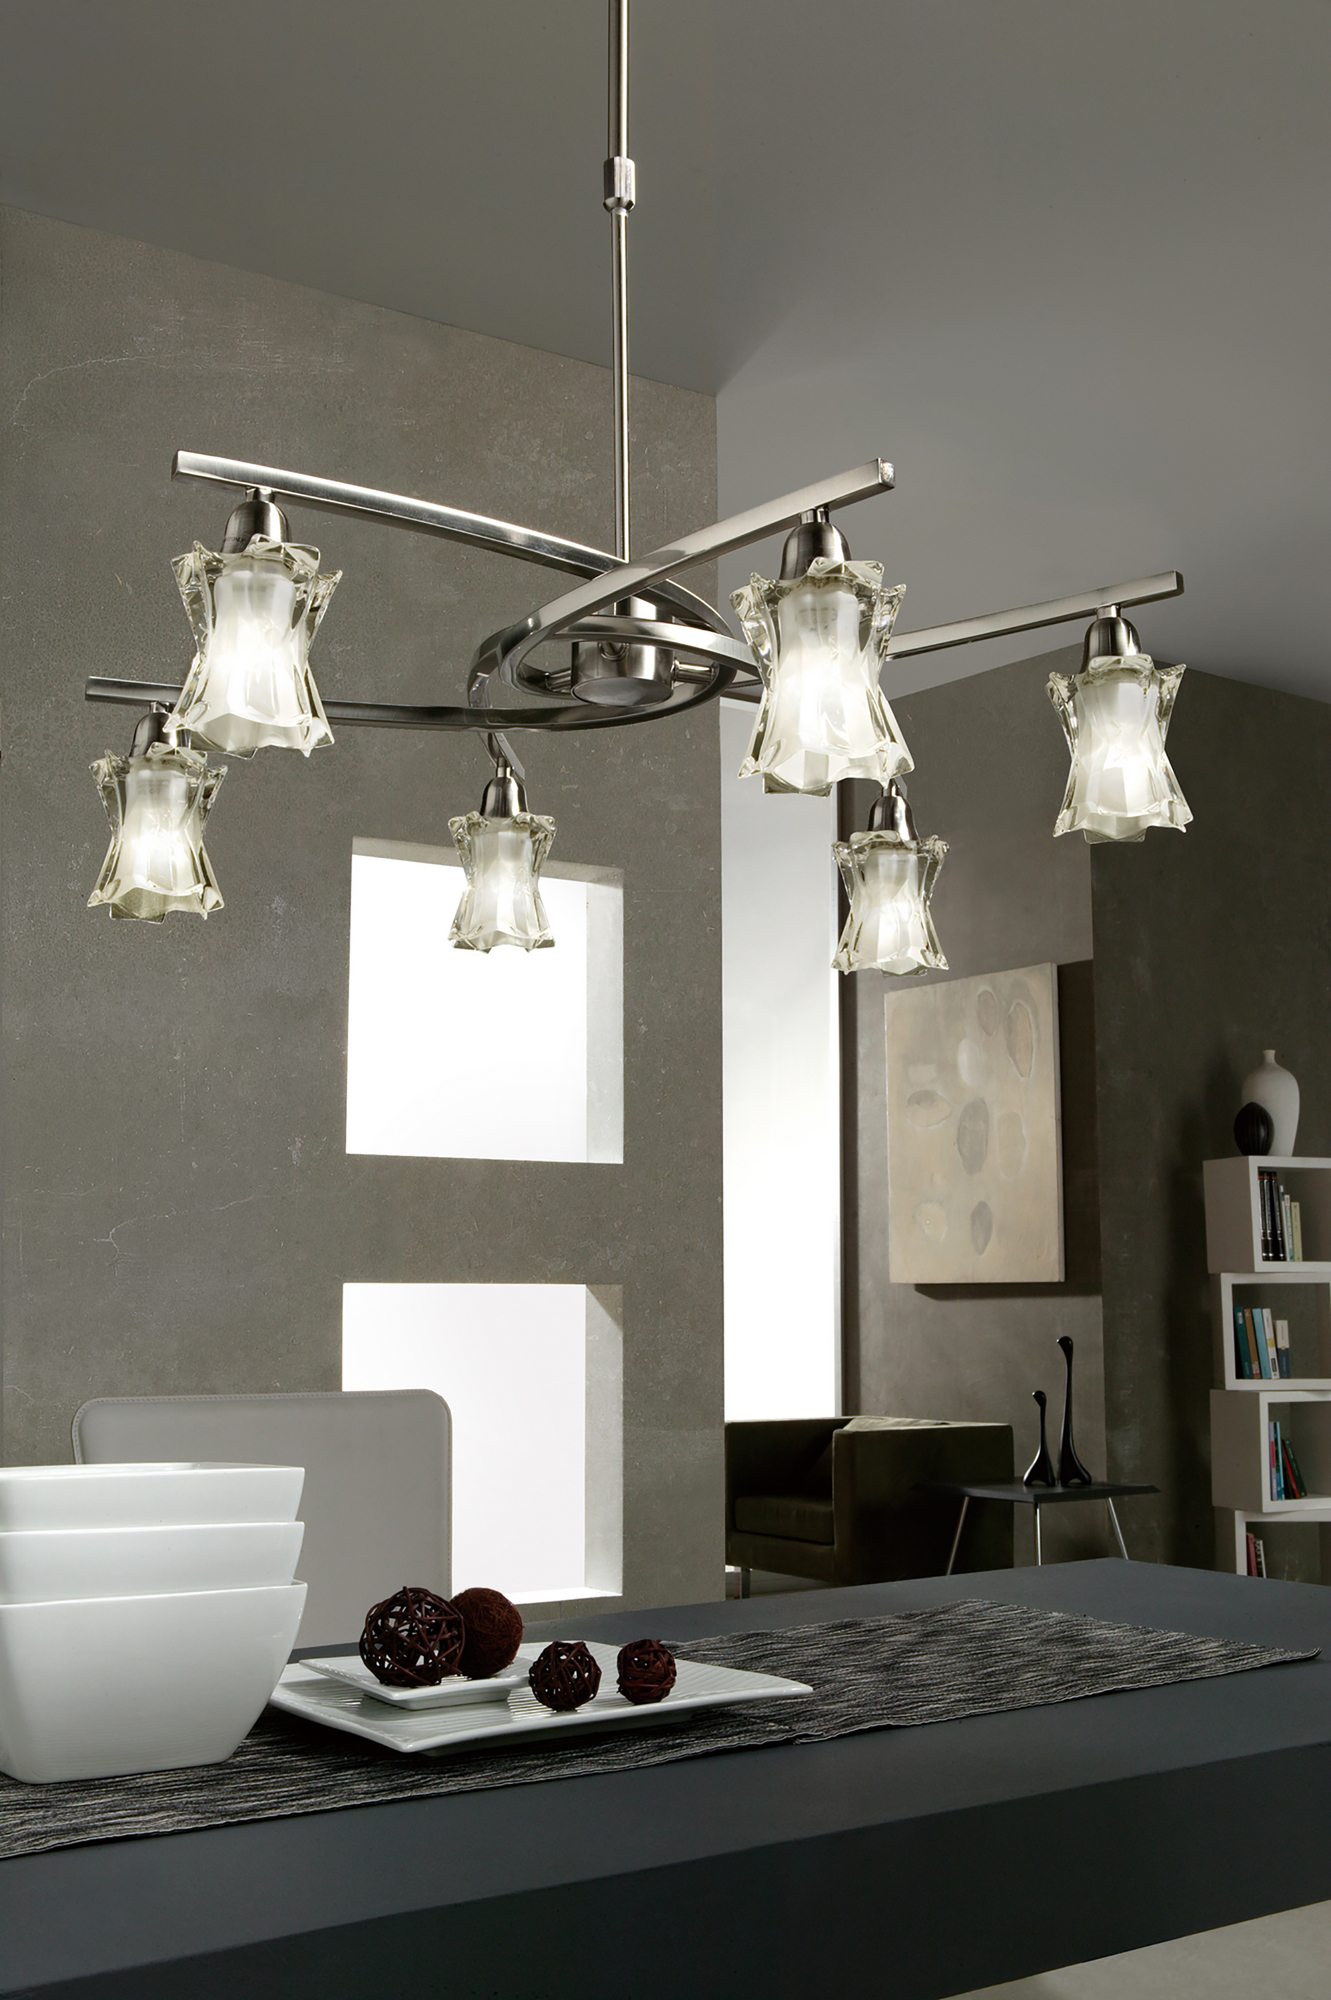 Alaska SN Ceiling Lights Mantra Contemporary Ceiling Lights